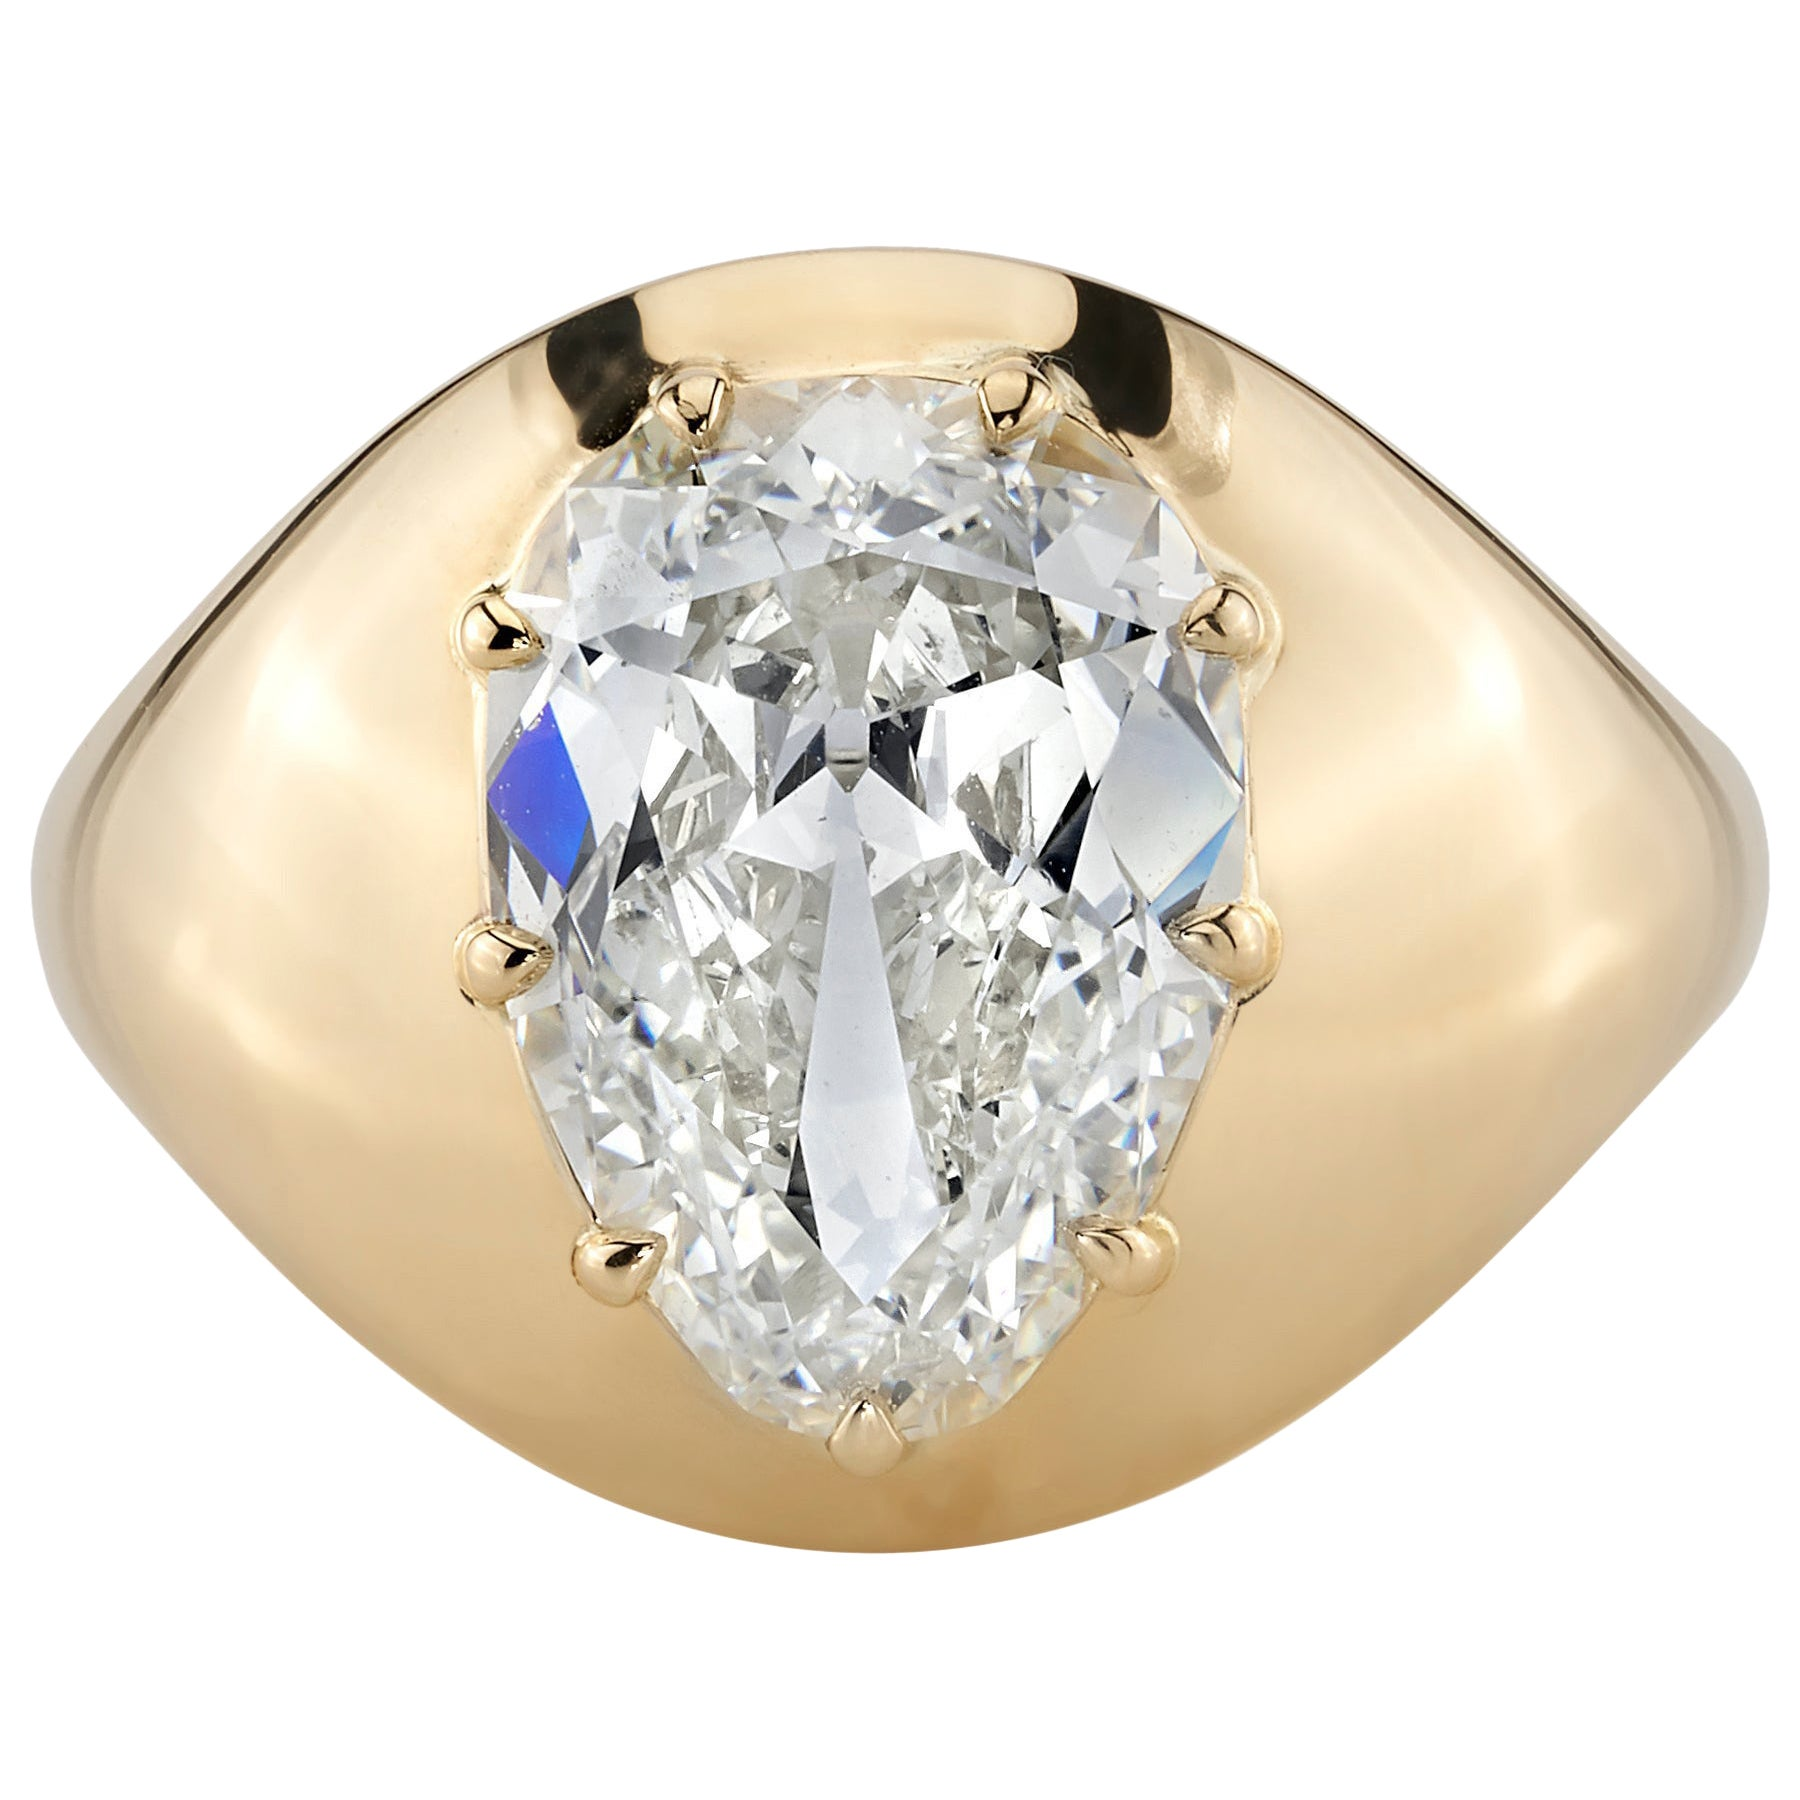 3.32 Carat Pear Shaped Diamond Set in a Handcrafted 18 Karat Yellow Gold Ring.